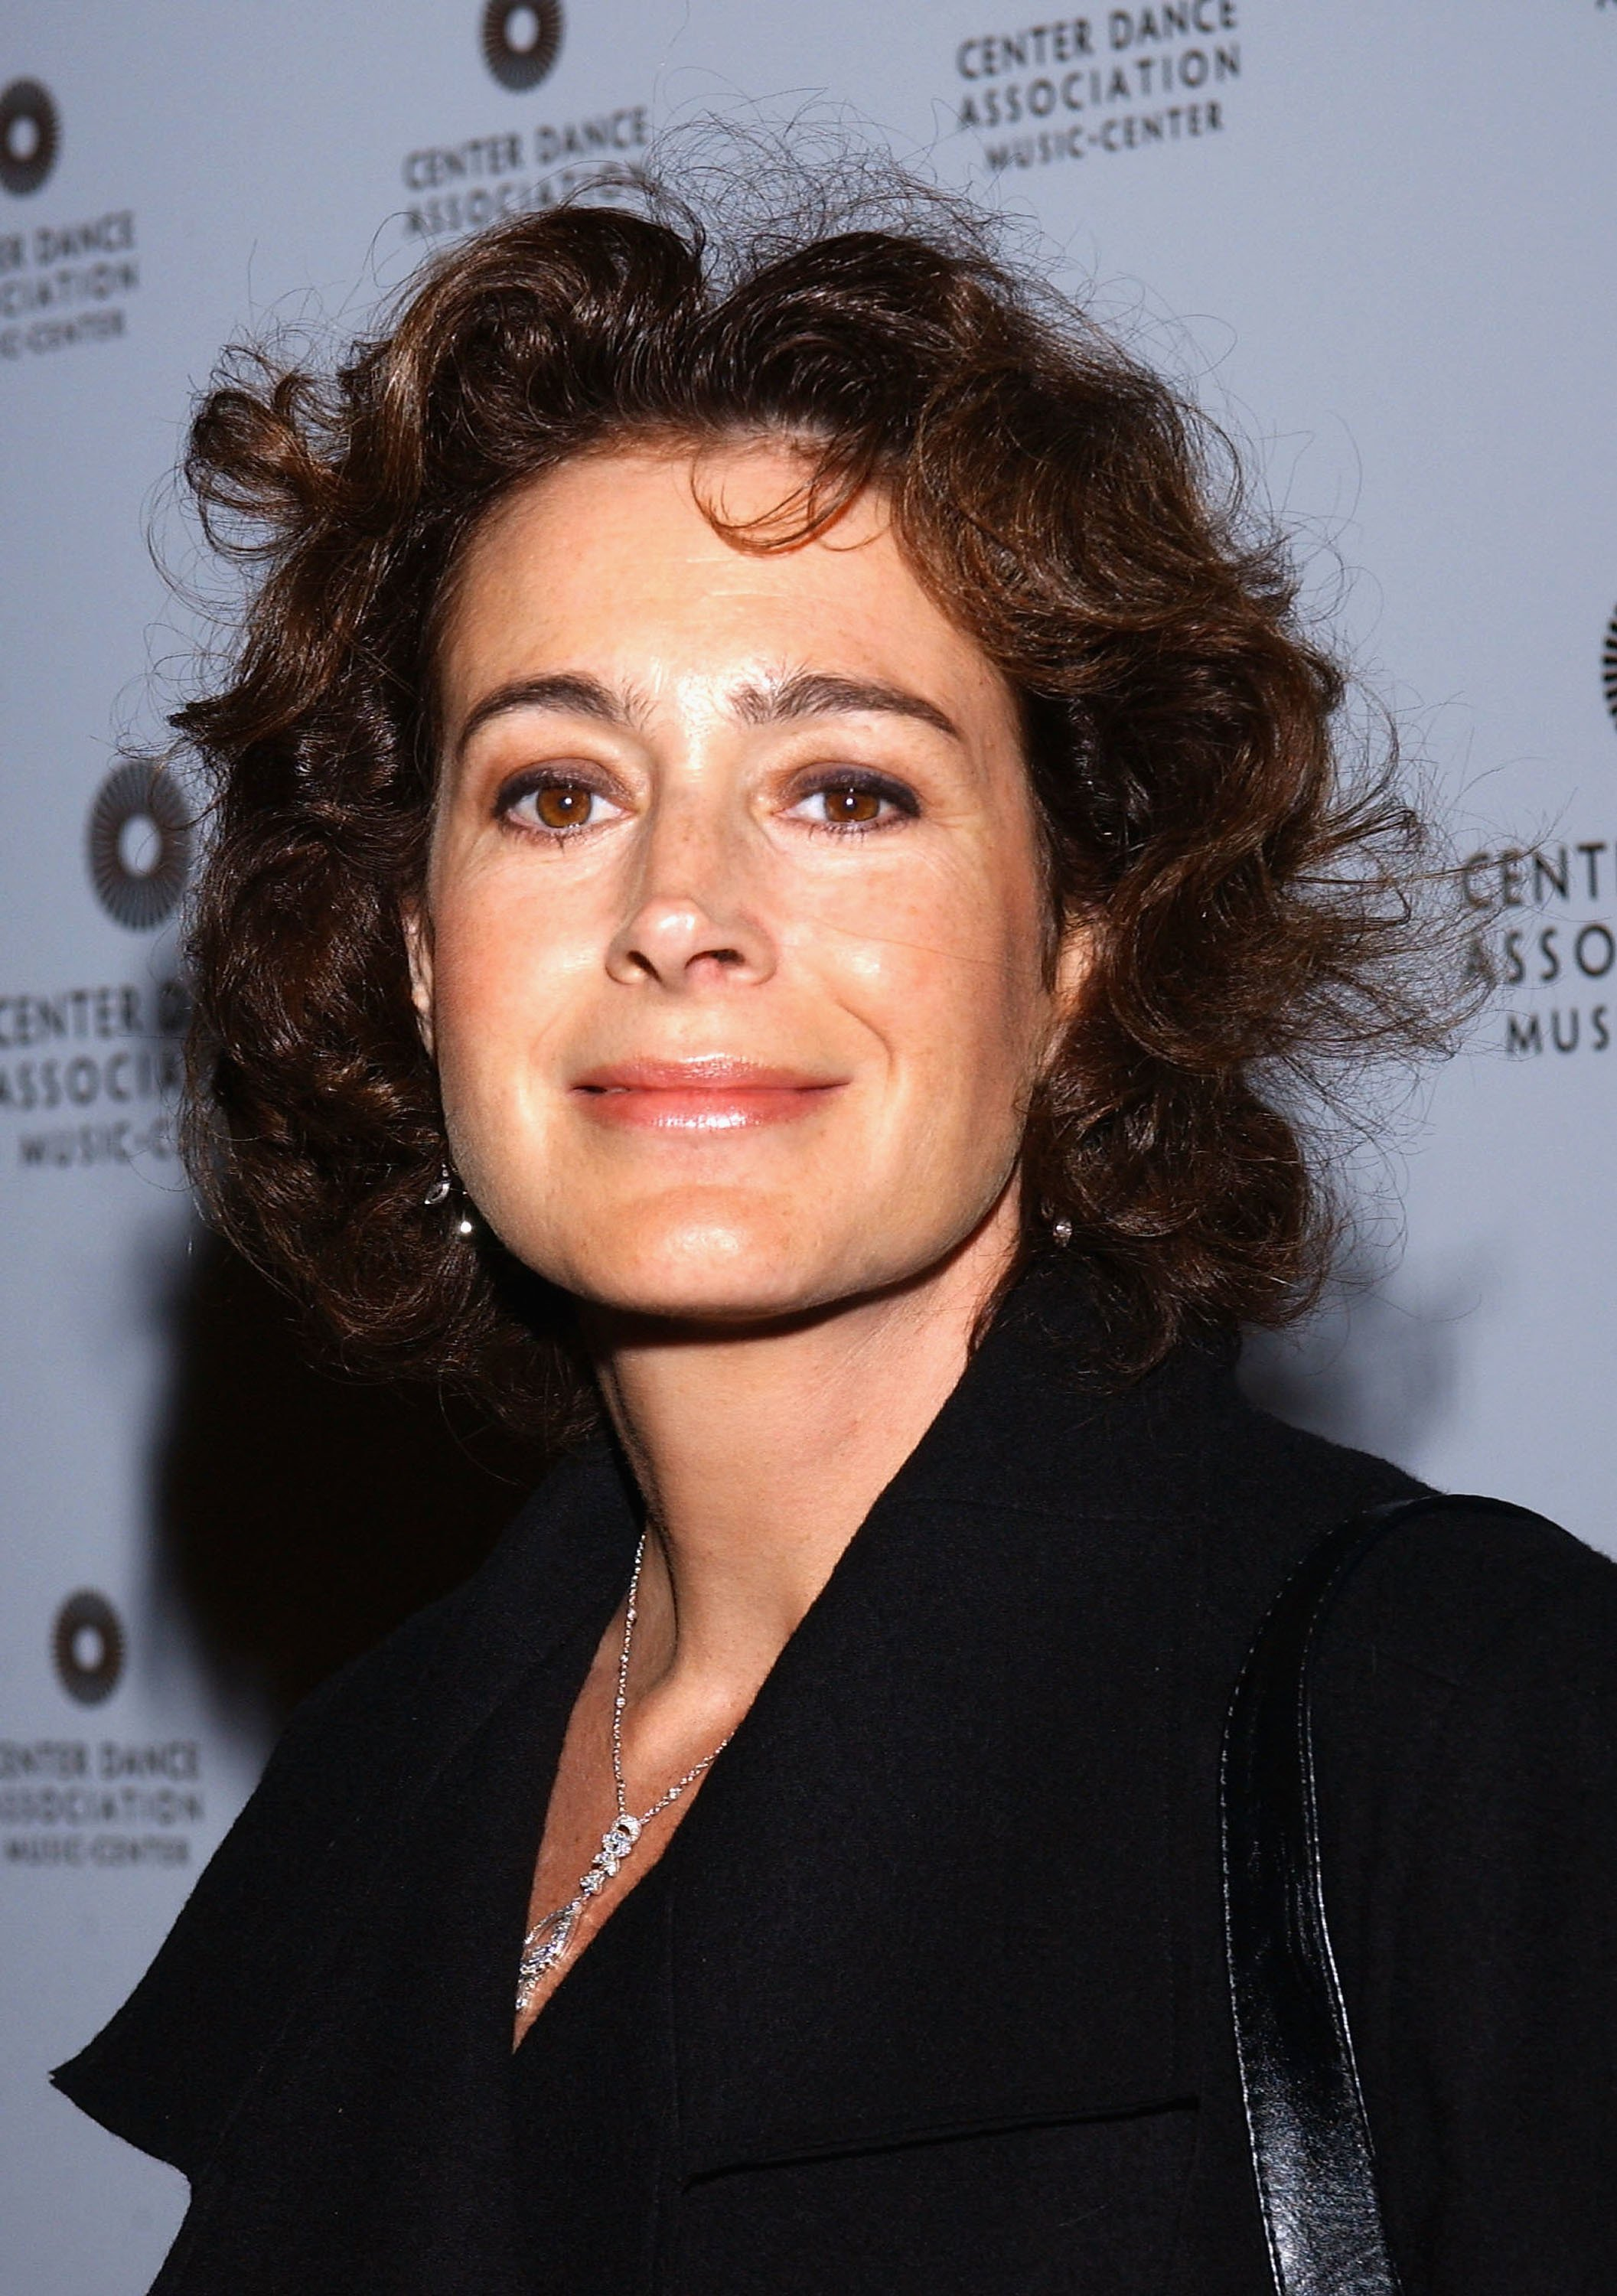 Sean Young attends the New York City Ballet Gala at the Dorothy Chandler Pavilion. | Source: Getty Images